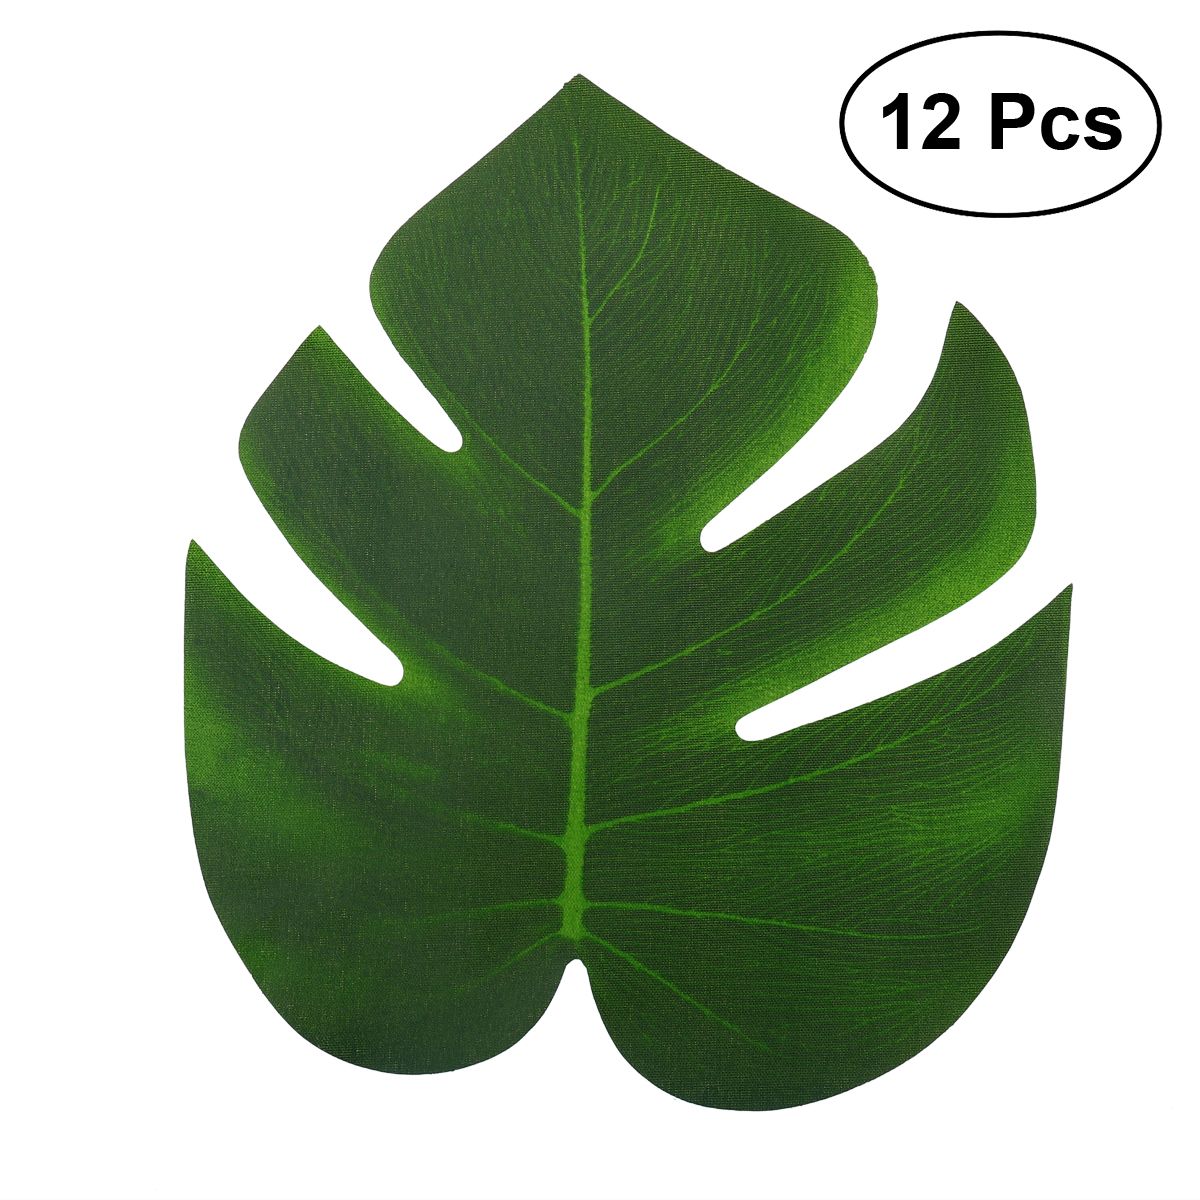 12pcs 20x18cm Artificial Tropical Palm Leaves Simulation Leaf for Hawaiian Luau Party Jungle Beach Theme Party Decorations